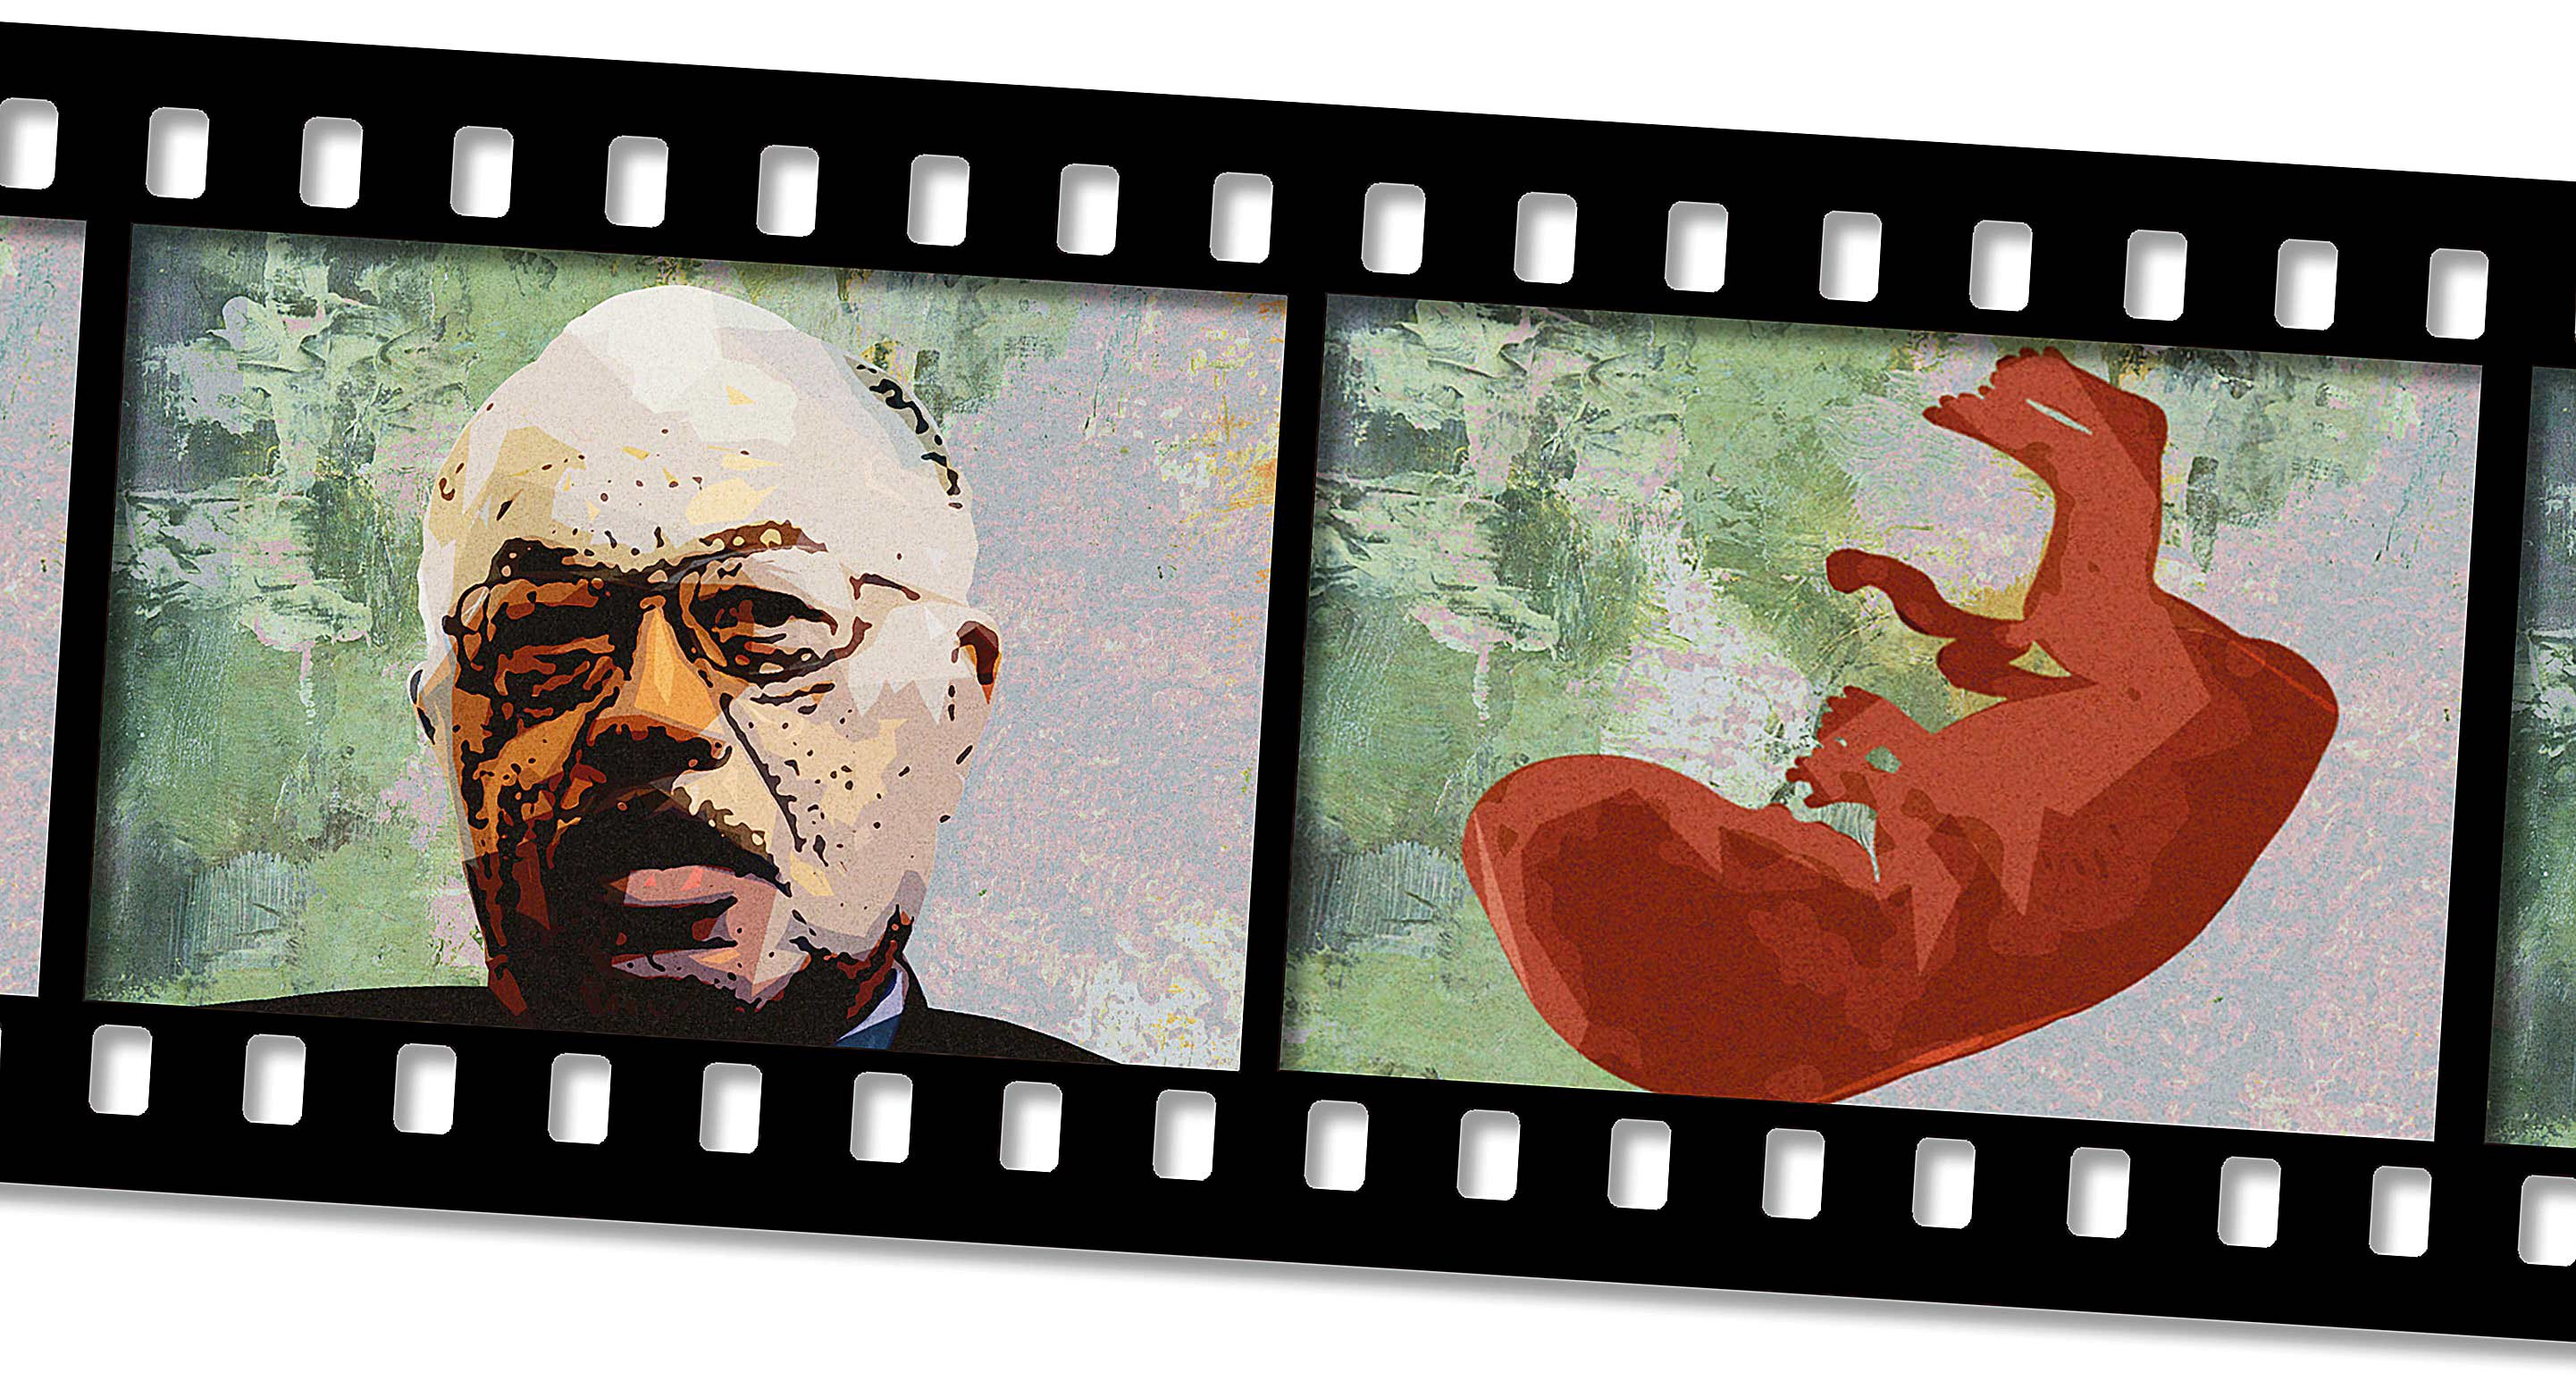 ROSE Kermit Gosnell Serial killer Hollywood won t touch